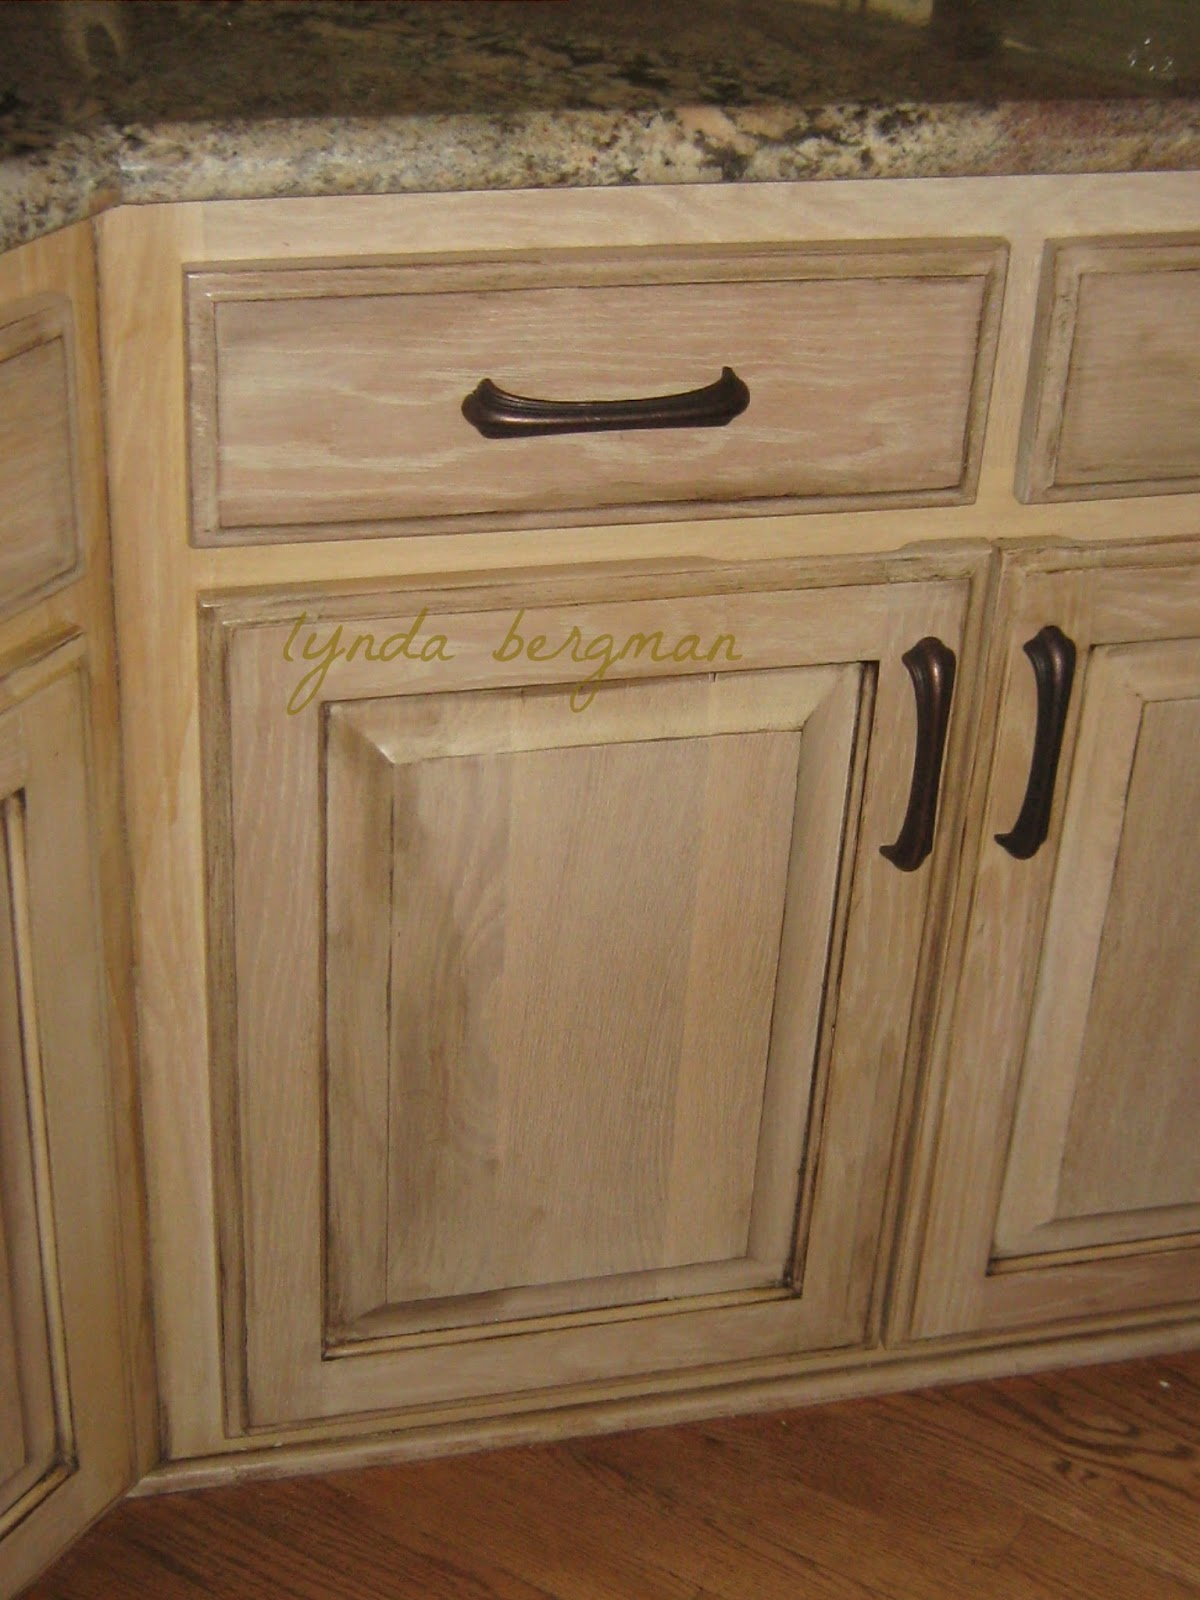 Lynda bergman decorative artisan distressing aging for White pickled kitchen cabinets